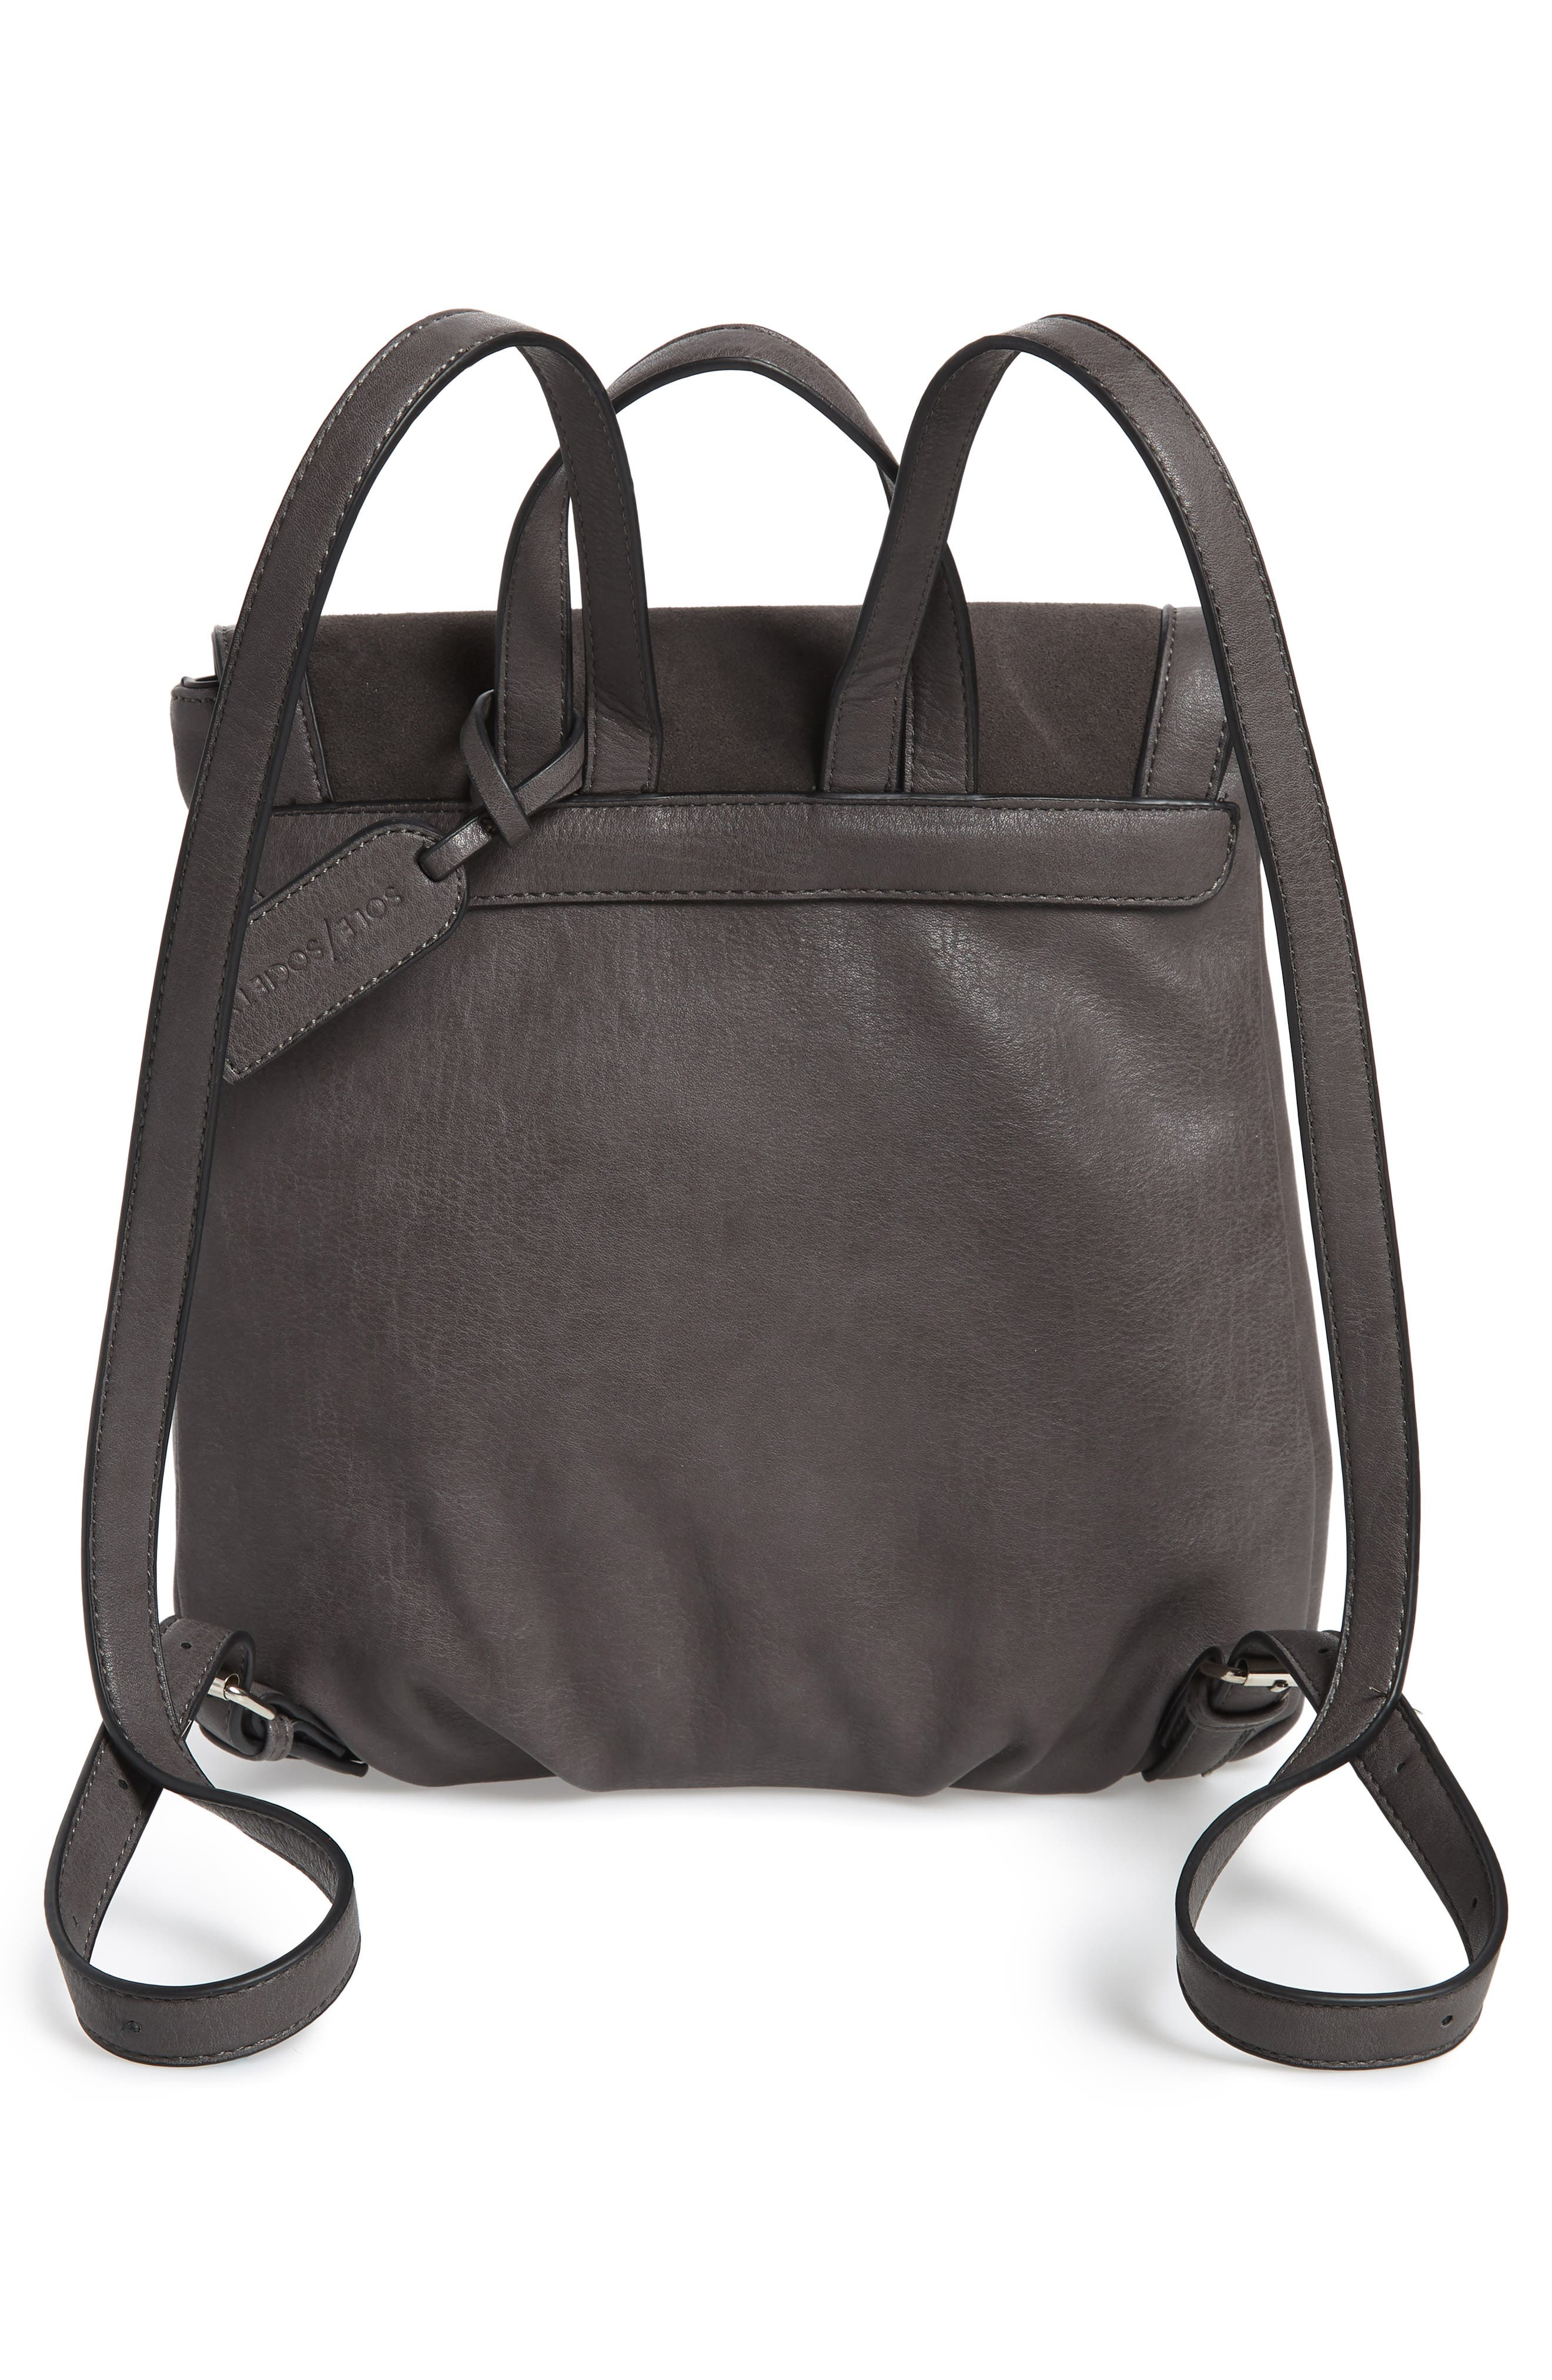 Chele Backpack,                             Alternate thumbnail 3, color,                             DARK GREY